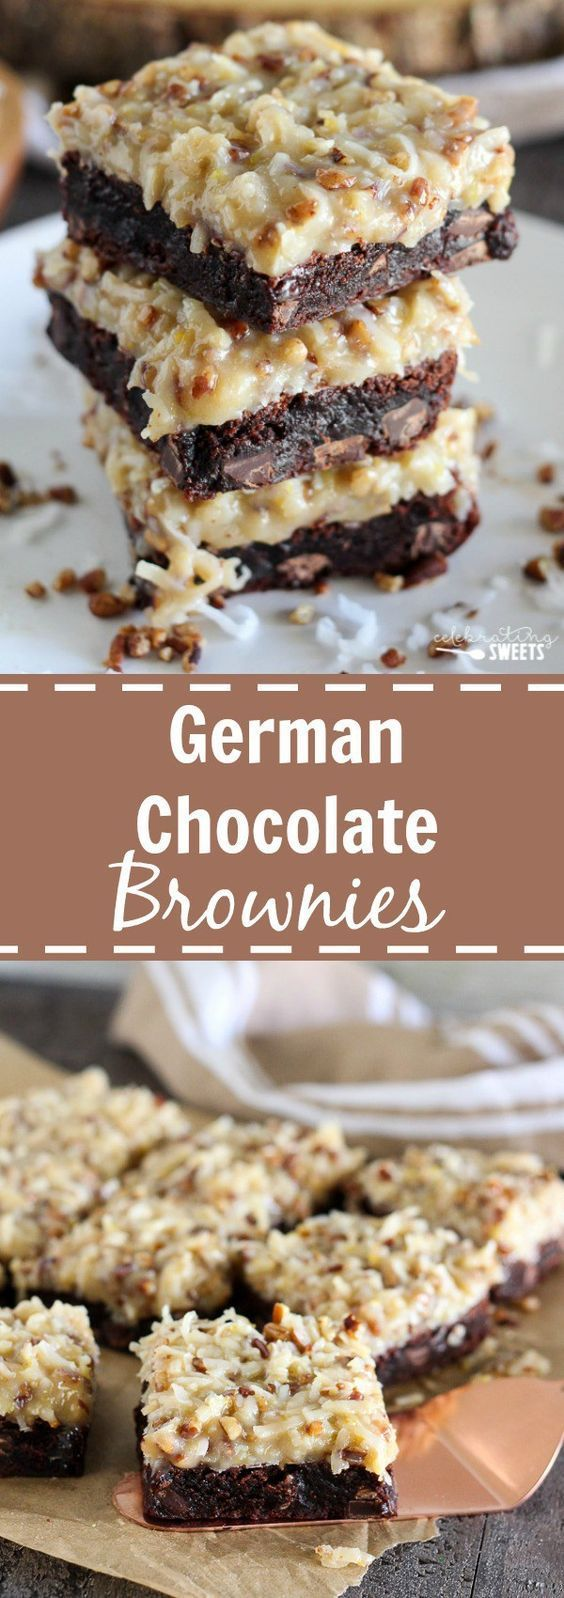 German Chocolate Brownies - Rich chocolaty brownies topped with a gooey homemade coconut pecan frosting. Make the brownies from scratch, or use a boxed brownie mix for the base of this recipe. You&apo (Homemade Chocolate Brownies)